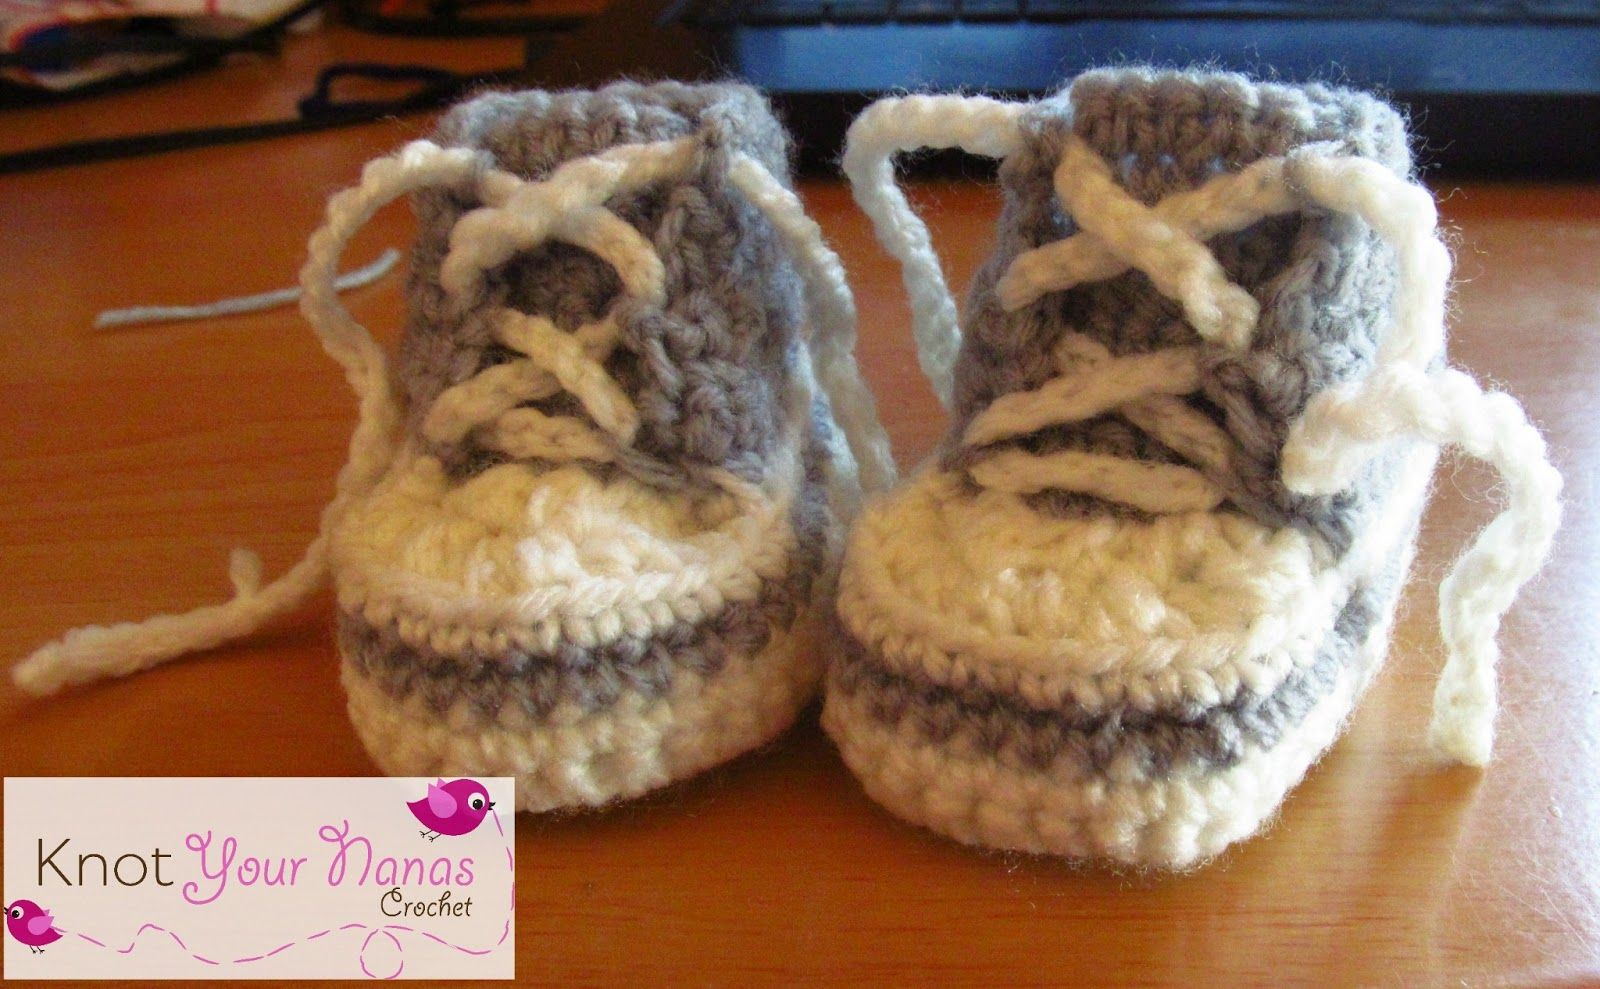 Free crochet pattern for newborn high tops or converse 6 12 months free crochet pattern for newborn high tops or converse 6 12 months bankloansurffo Image collections